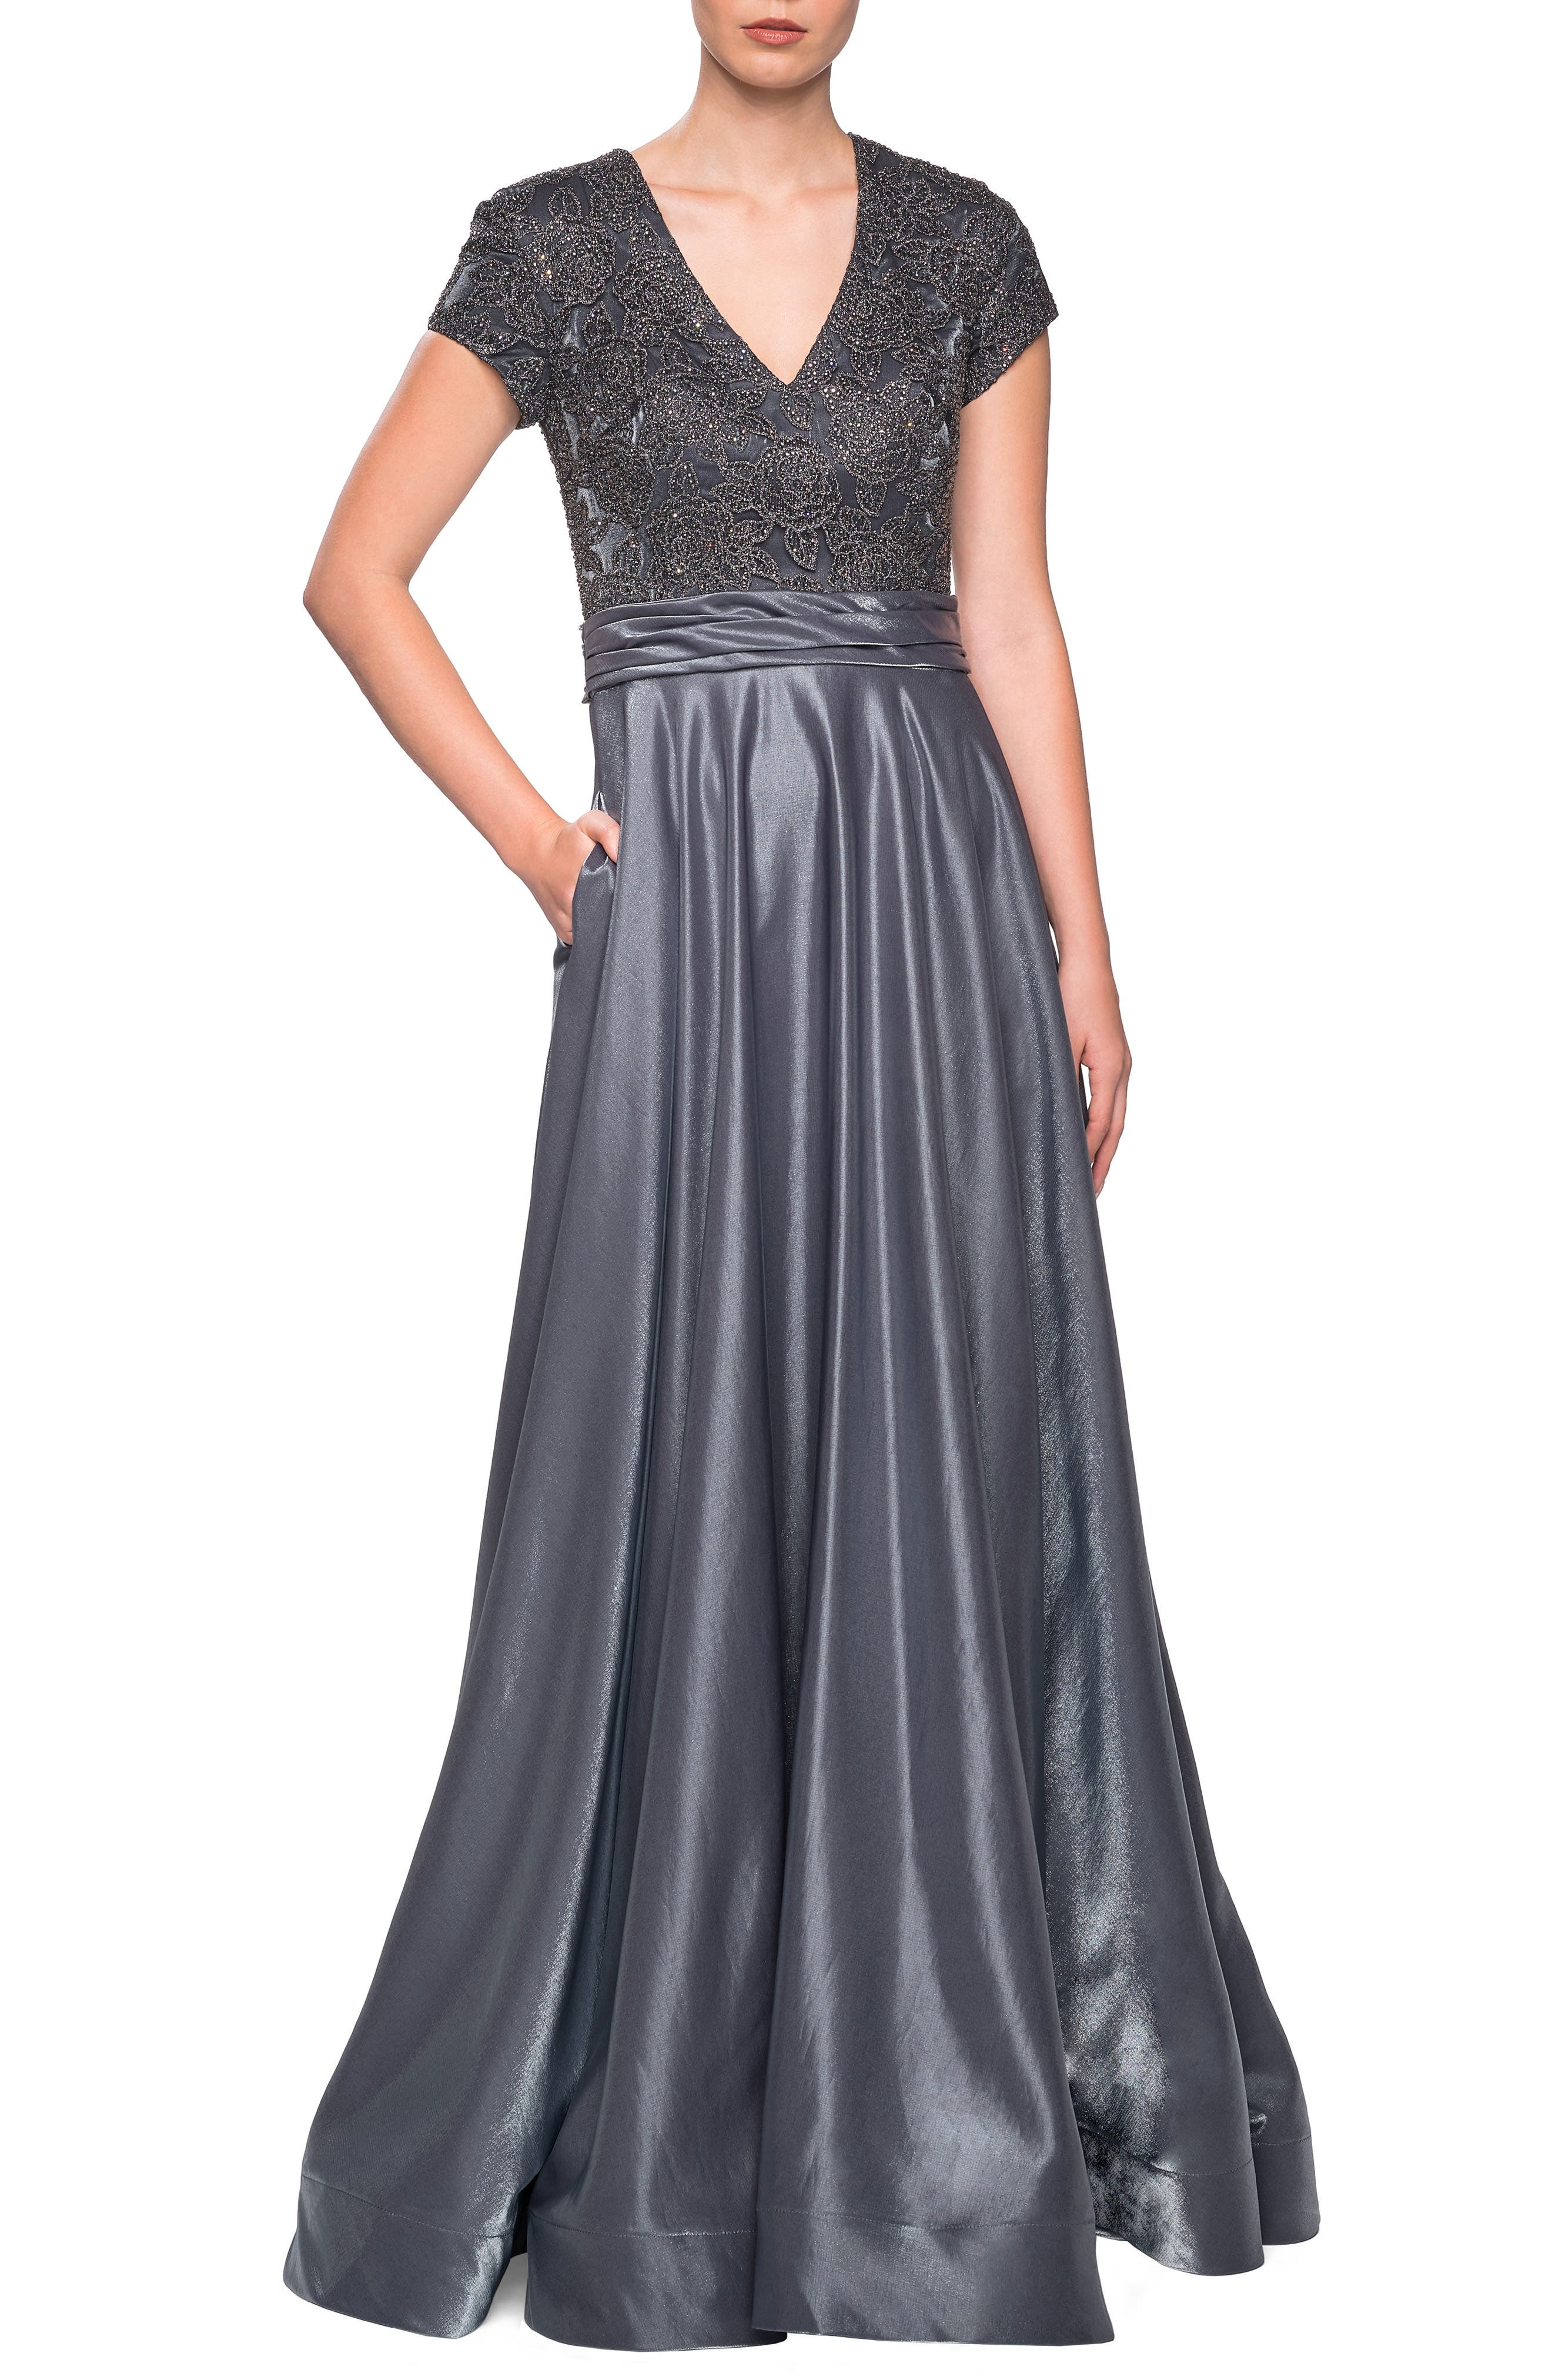 La Femme Two-Tone Satin A-Line Gown, Grey